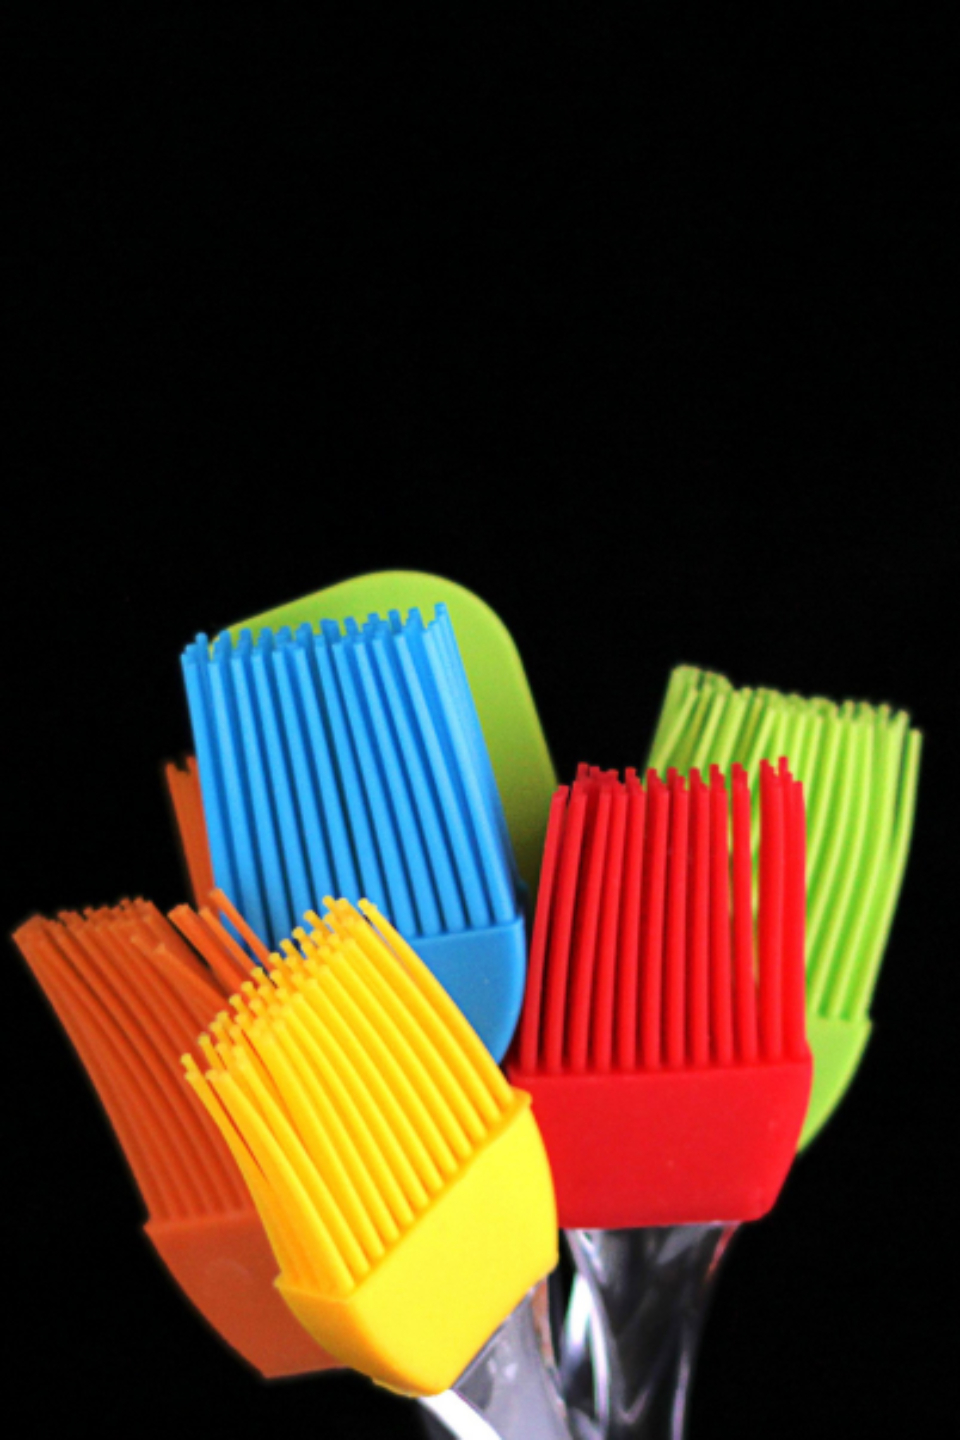 isolated pastry brushes colorful bake baking bakery homemade close up cooking equipment utensils food household kitchen kitchenware object